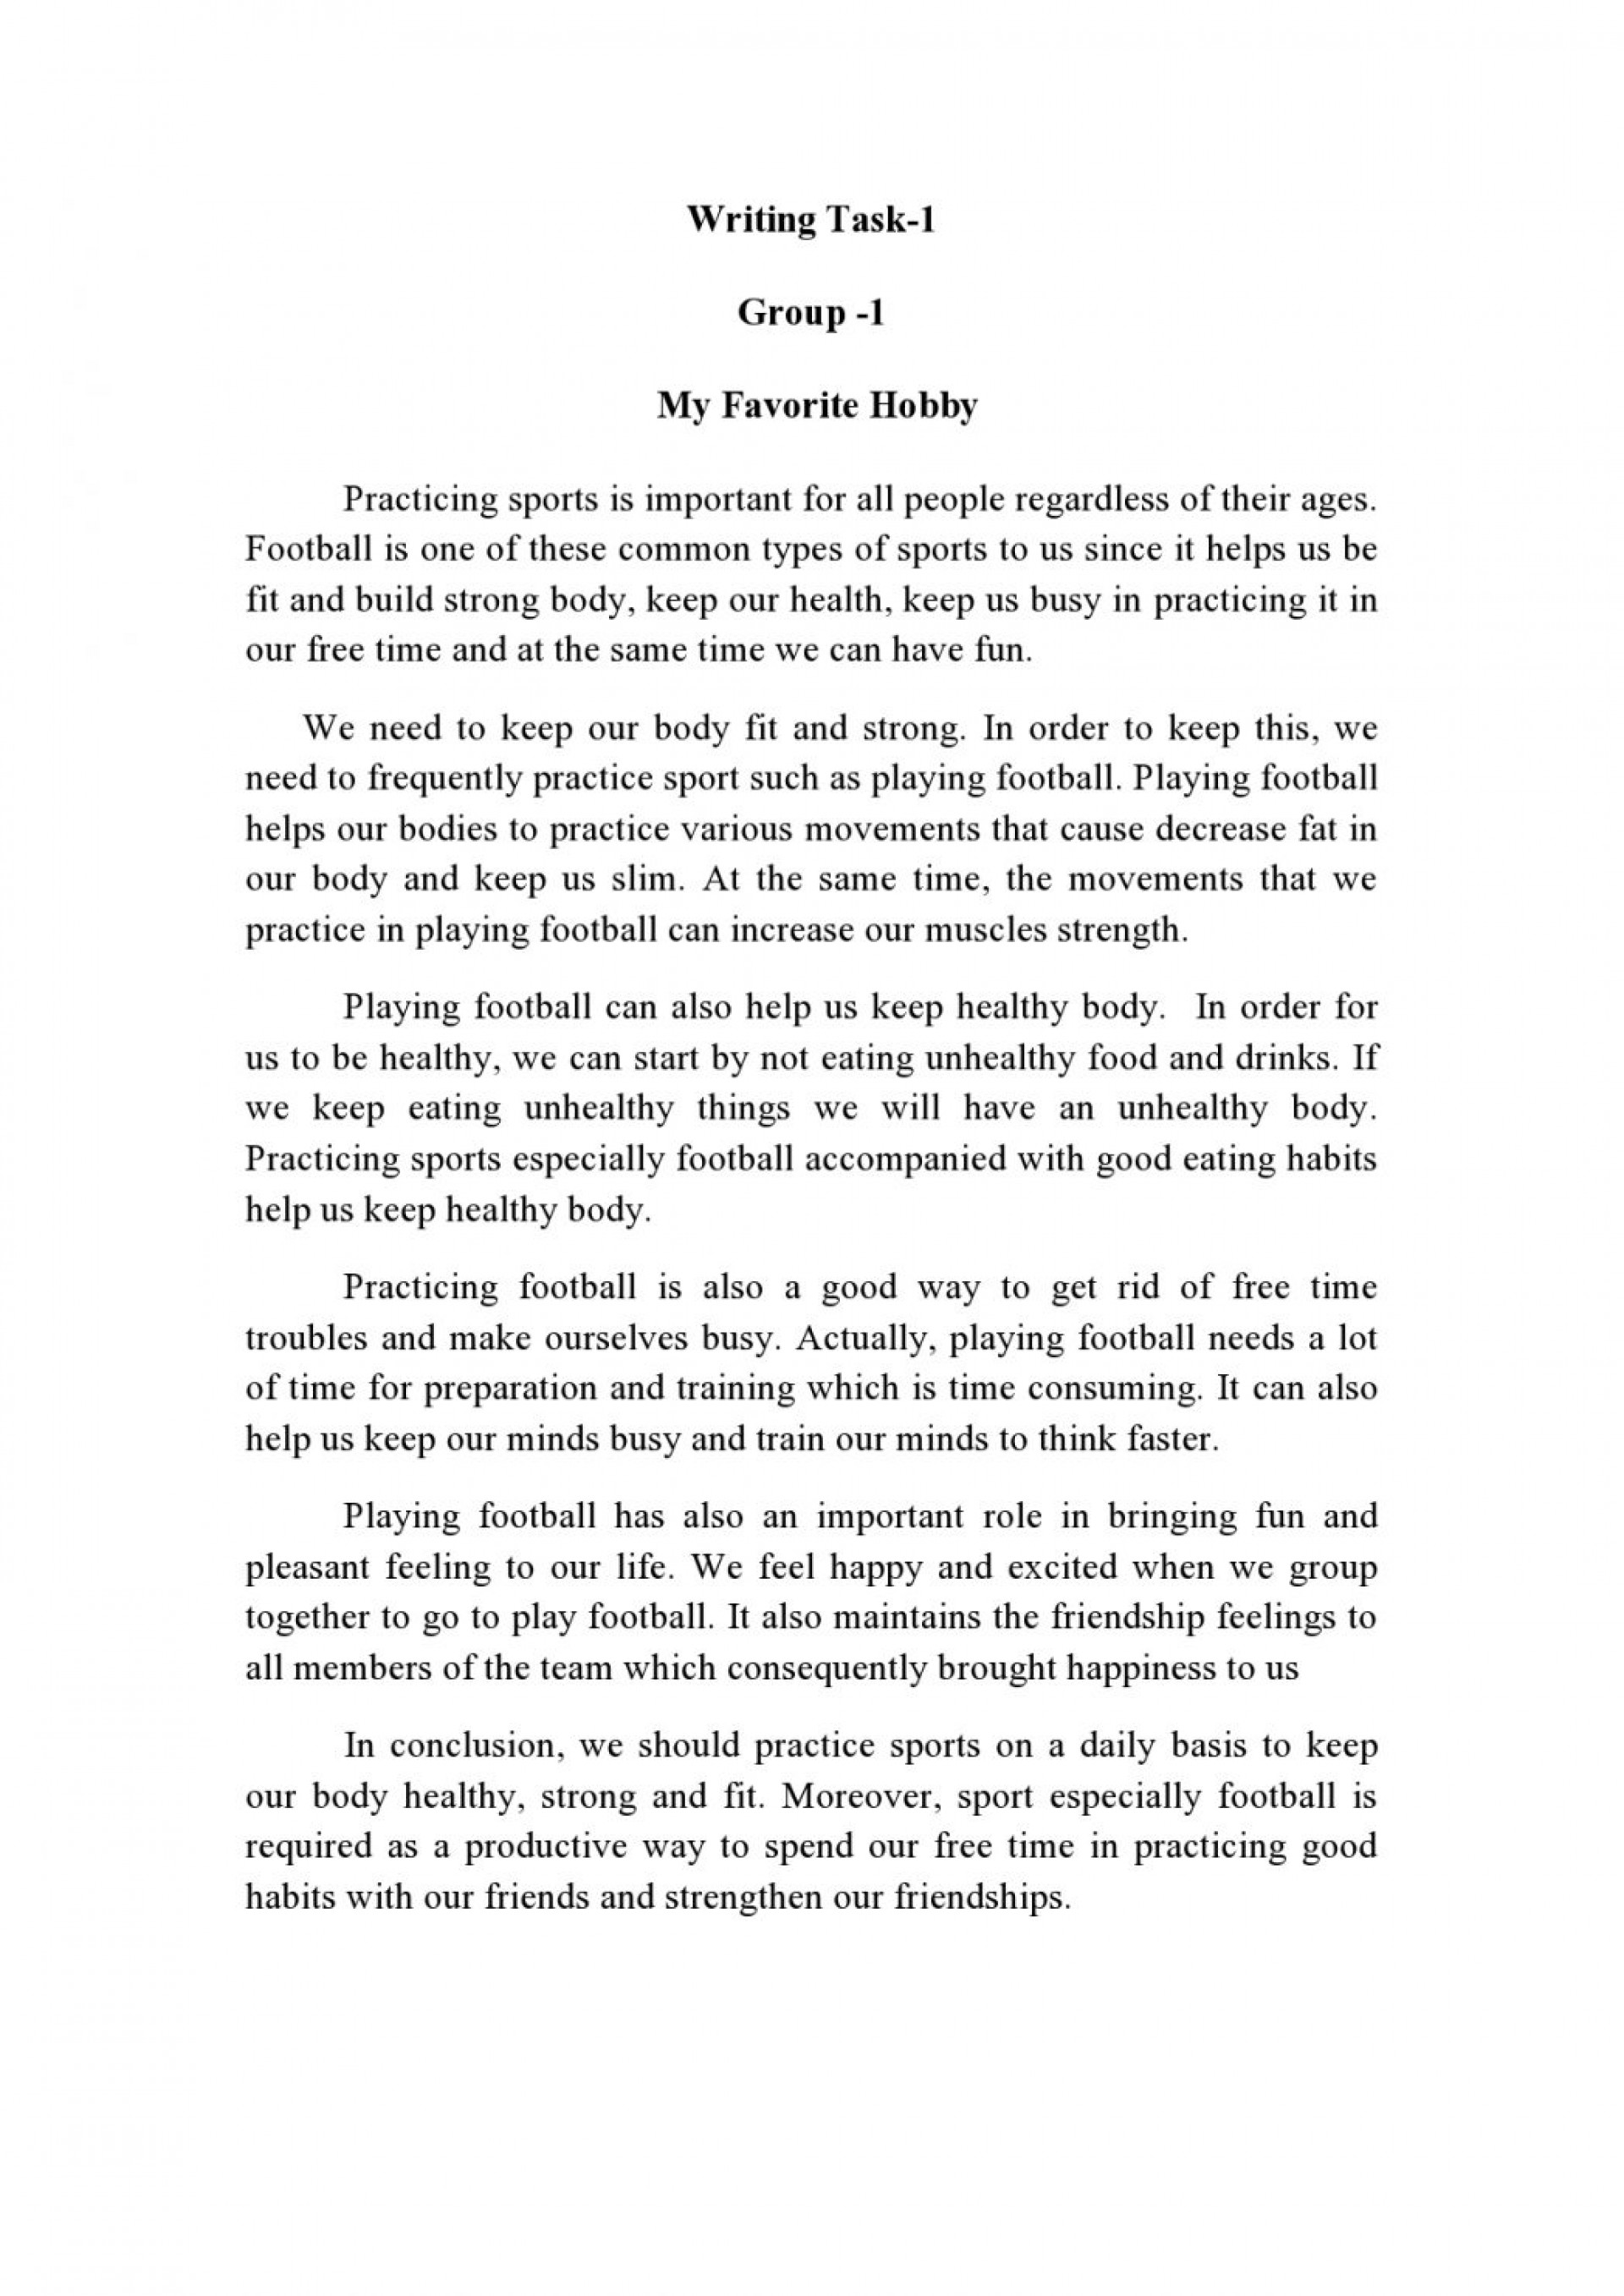 011 My Hobby Essay Example Writing Task One Blended Learning Environment W T Final Dr Write An On Gardening In English About Your Favorite Impressive Urdu Class 7 Hindi Cricket Marathi 1920